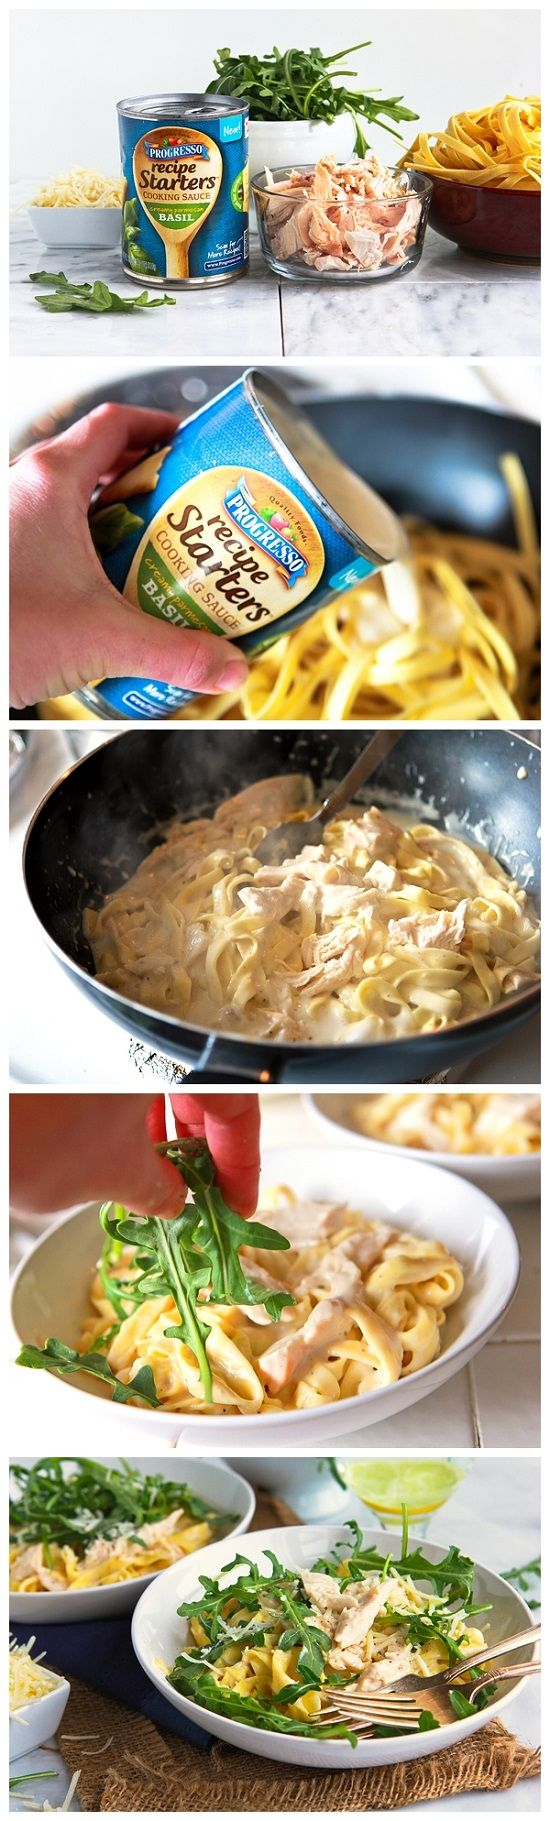 10-Minute Creamy Basil Chicken Dinner-      9 ounces fresh fettuccine (found in the refrigerated section of most grocery stores)      1 (18 ounce) can Progresso Recipes Starters, Creamy Parmesan Basil flavor      1 cup water      1/4 cup fresh Parmesan, shaved or shredded      2 cups arugula      1 cup cooked rotisserie chicken, diced